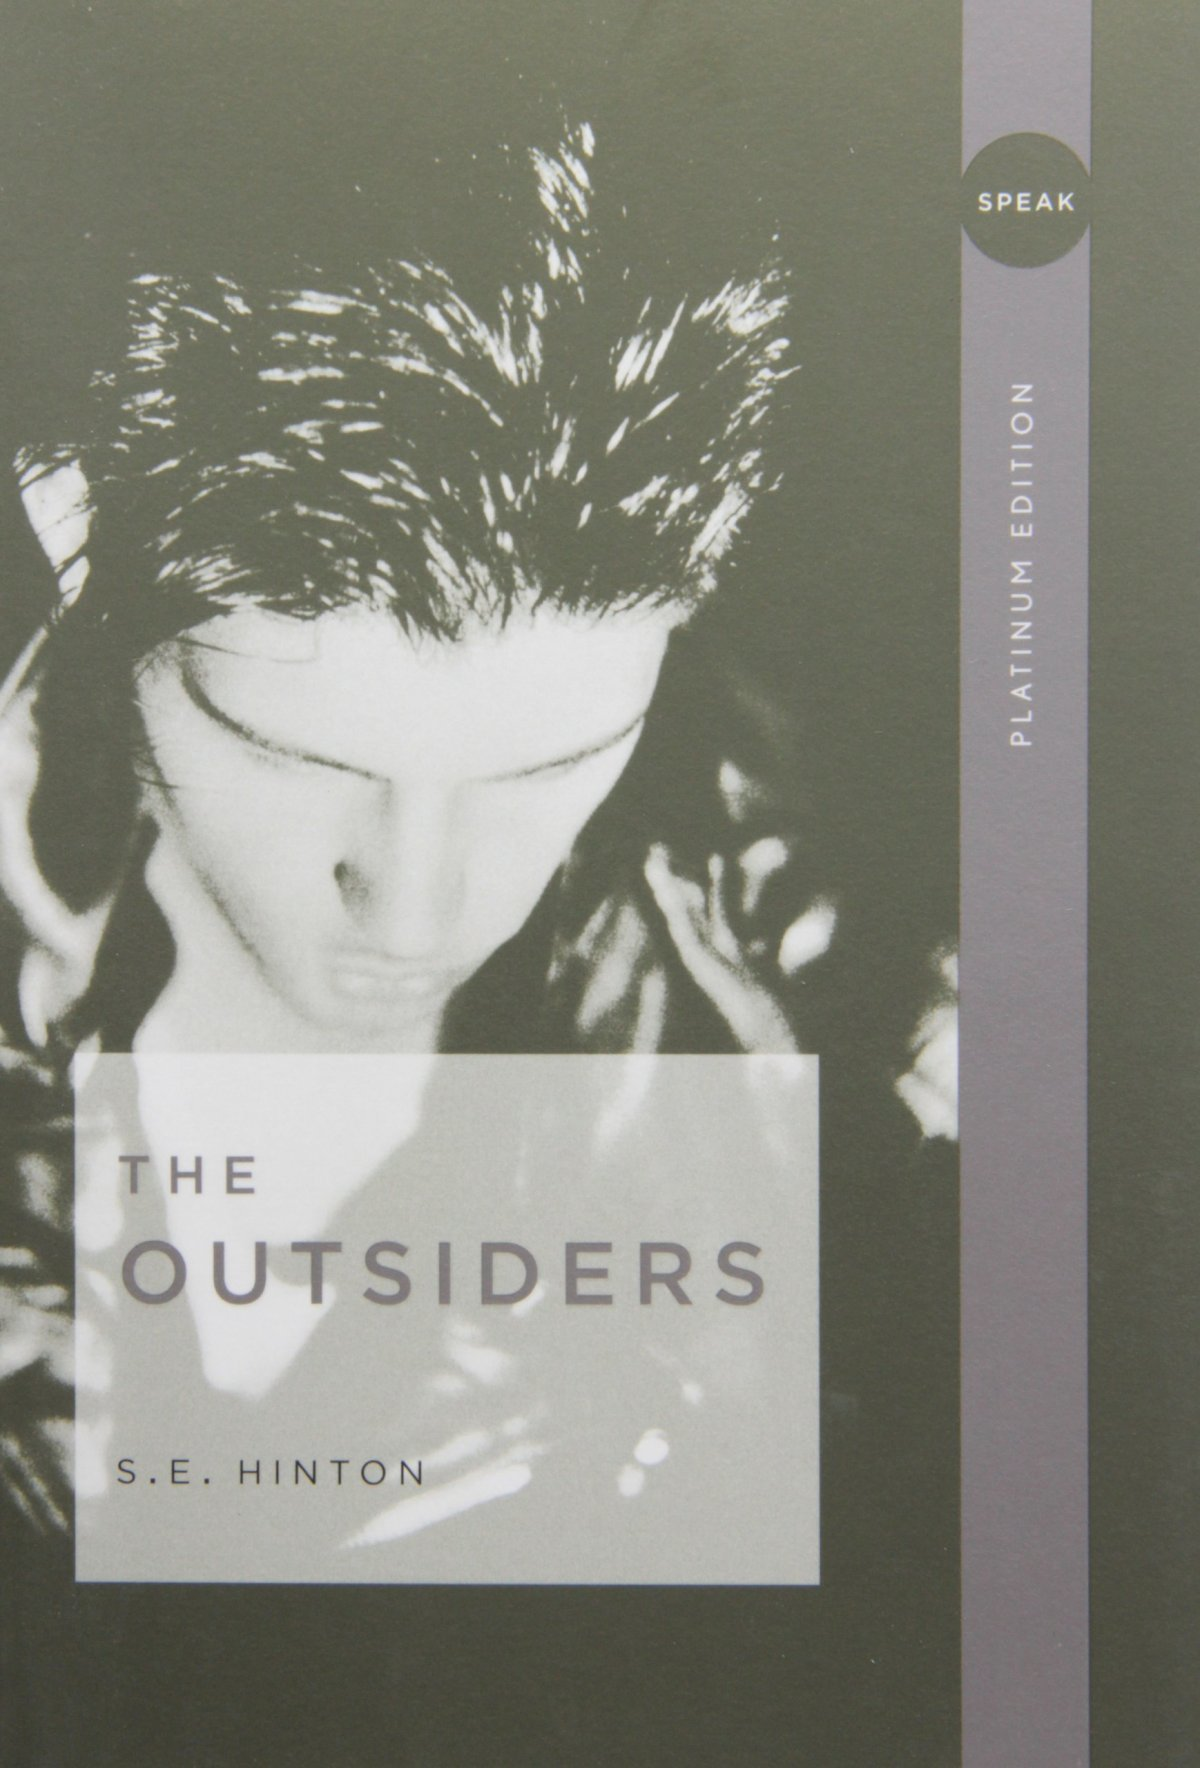 the good side to everyone in the outsiders a novel by s e hinton But times have been a-changin' since author se hinton penned the book, long beloved by misfit teens, when she herself was a high schooler in tulsa, oklahoma.